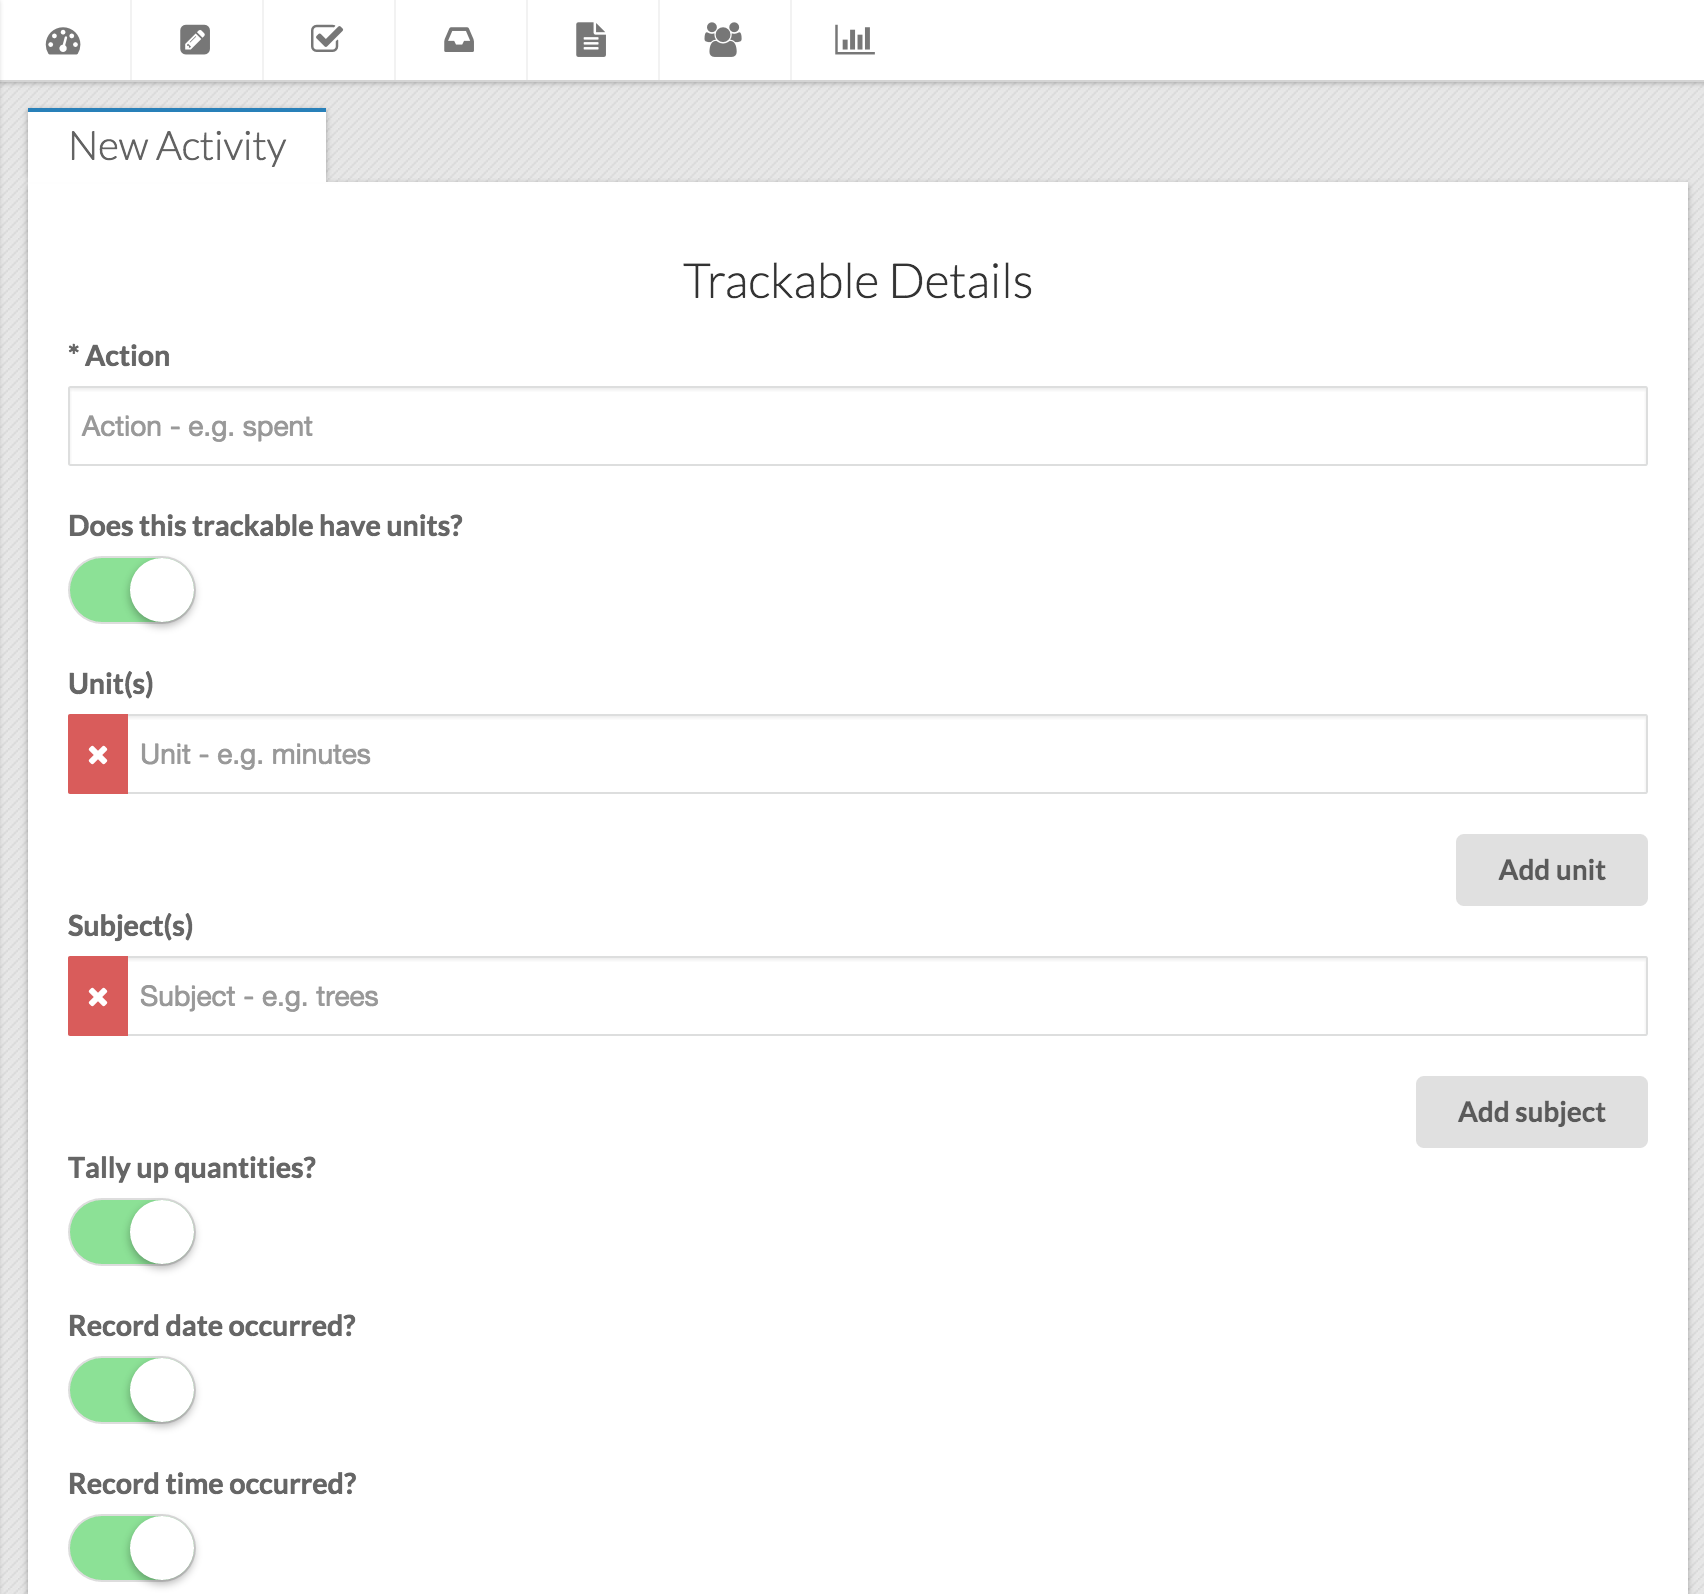 Users can create custom trackables in ManagePlaces to measure their own key performance indicators